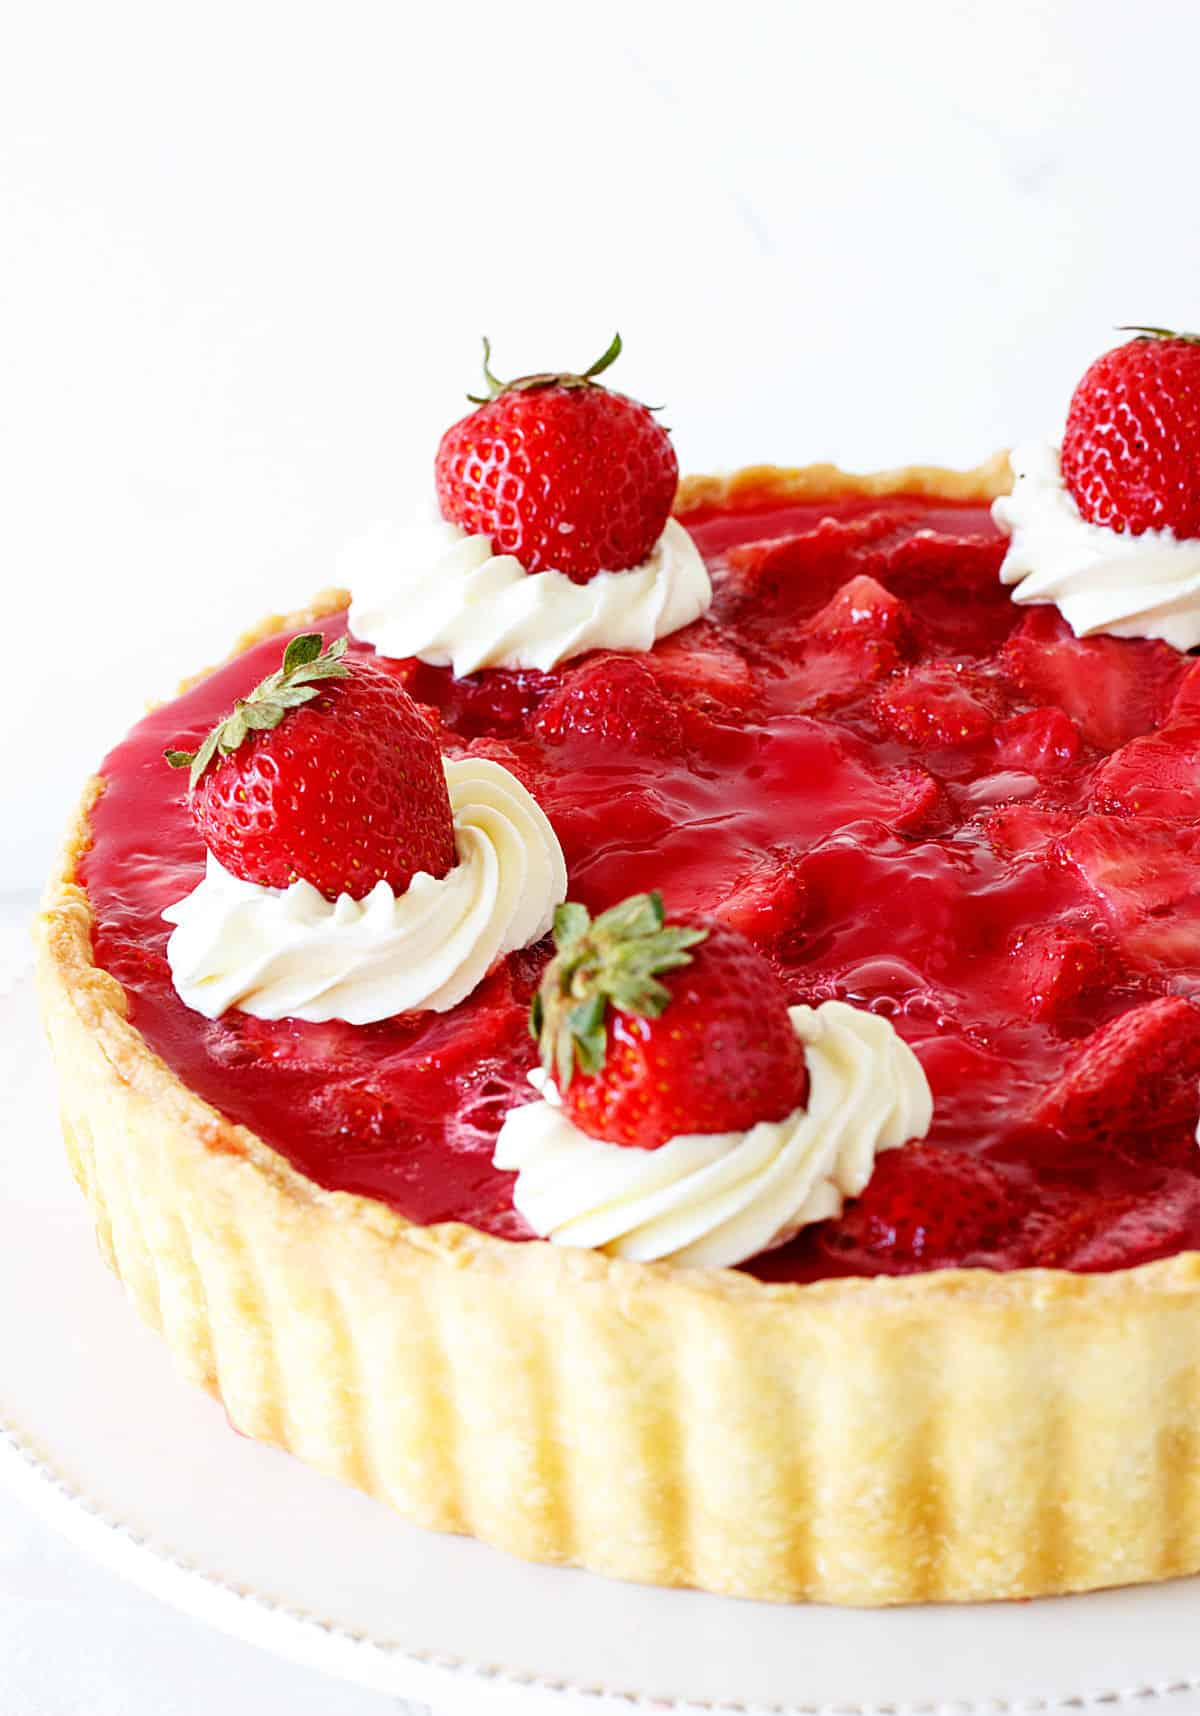 Half strawberry tart with piped cream on top on white background